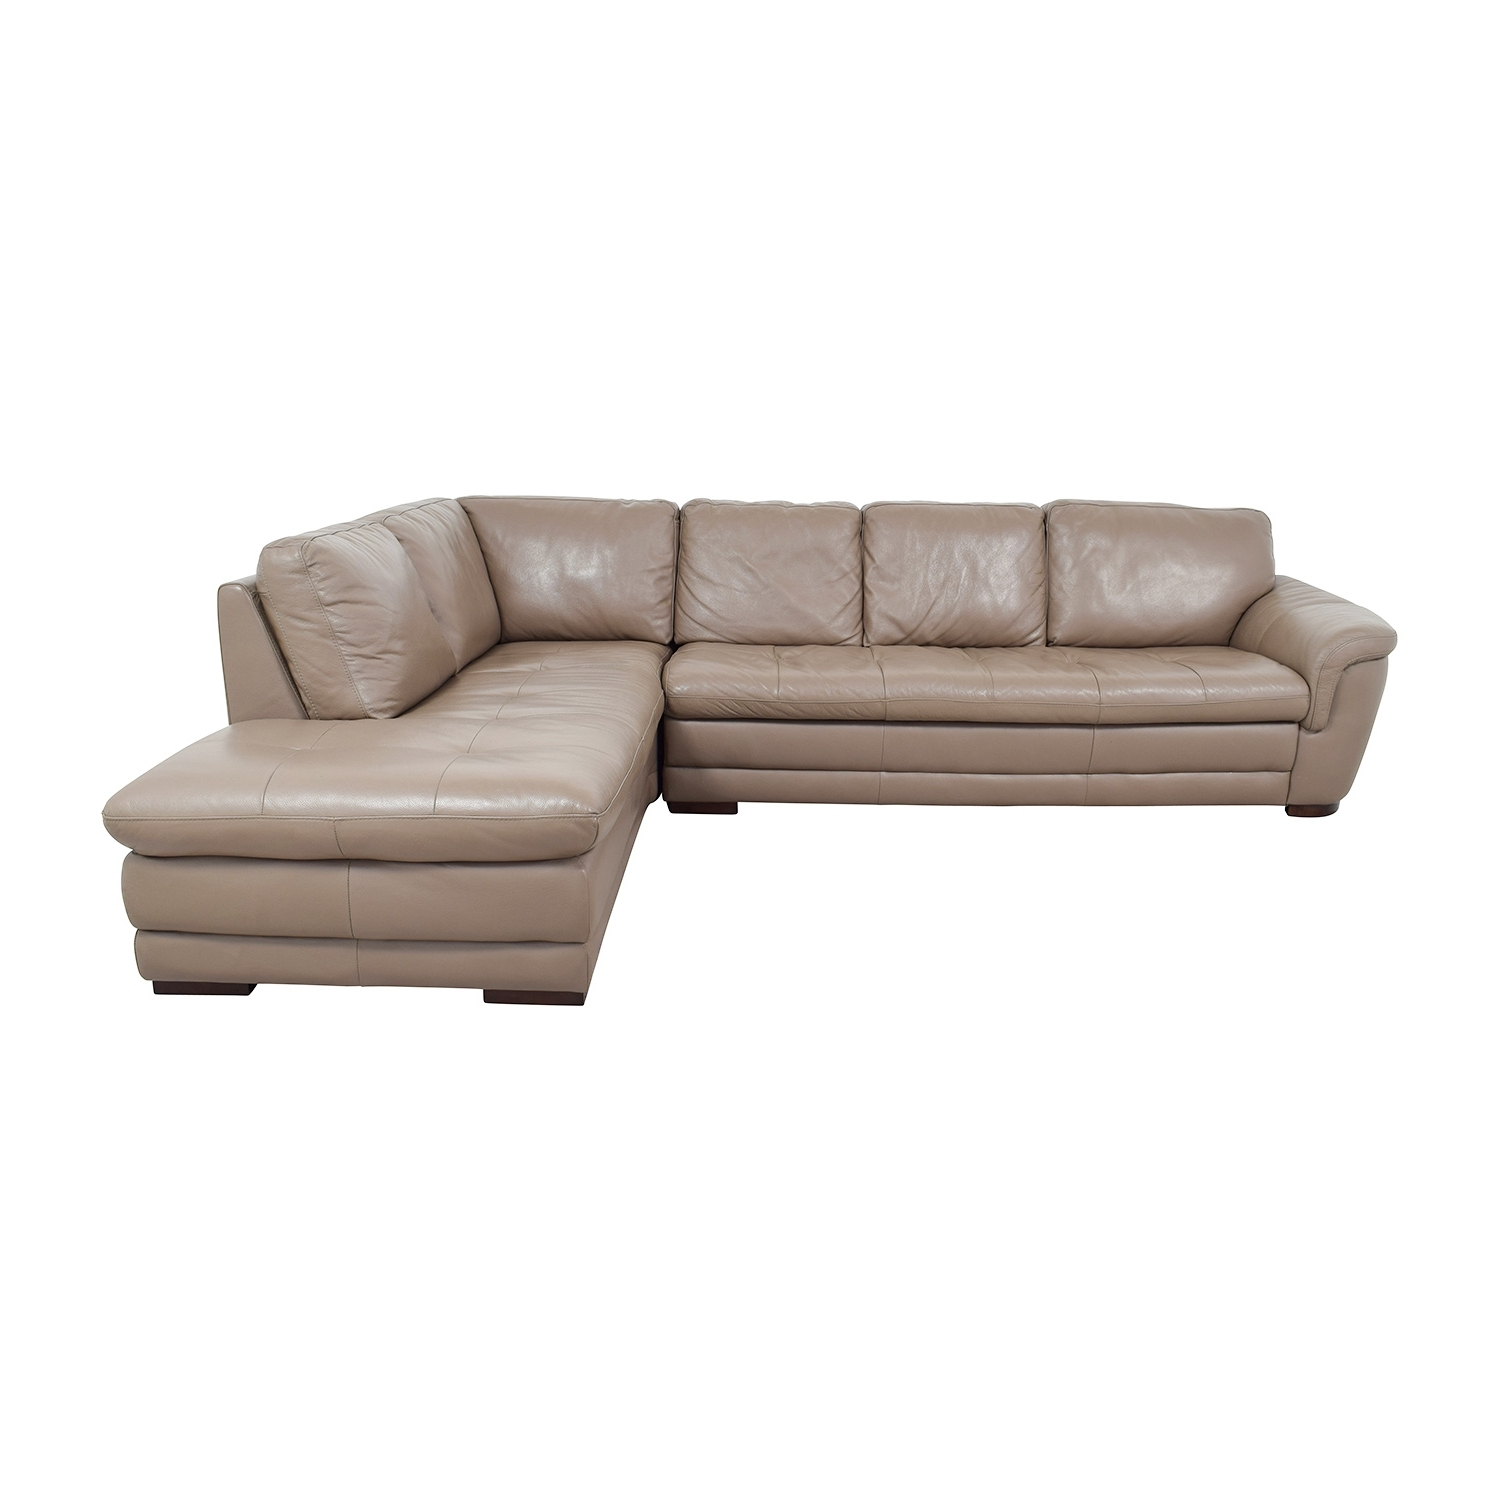 [%74% Off – Raymour And Flanigan Raymour & Flanigan Tan Tufted Regarding Most Recently Released Raymour And Flanigan Sectional Sofas|Raymour And Flanigan Sectional Sofas With Most Recent 74% Off – Raymour And Flanigan Raymour & Flanigan Tan Tufted|Well Known Raymour And Flanigan Sectional Sofas Inside 74% Off – Raymour And Flanigan Raymour & Flanigan Tan Tufted|2018 74% Off – Raymour And Flanigan Raymour & Flanigan Tan Tufted In Raymour And Flanigan Sectional Sofas%] (View 9 of 15)